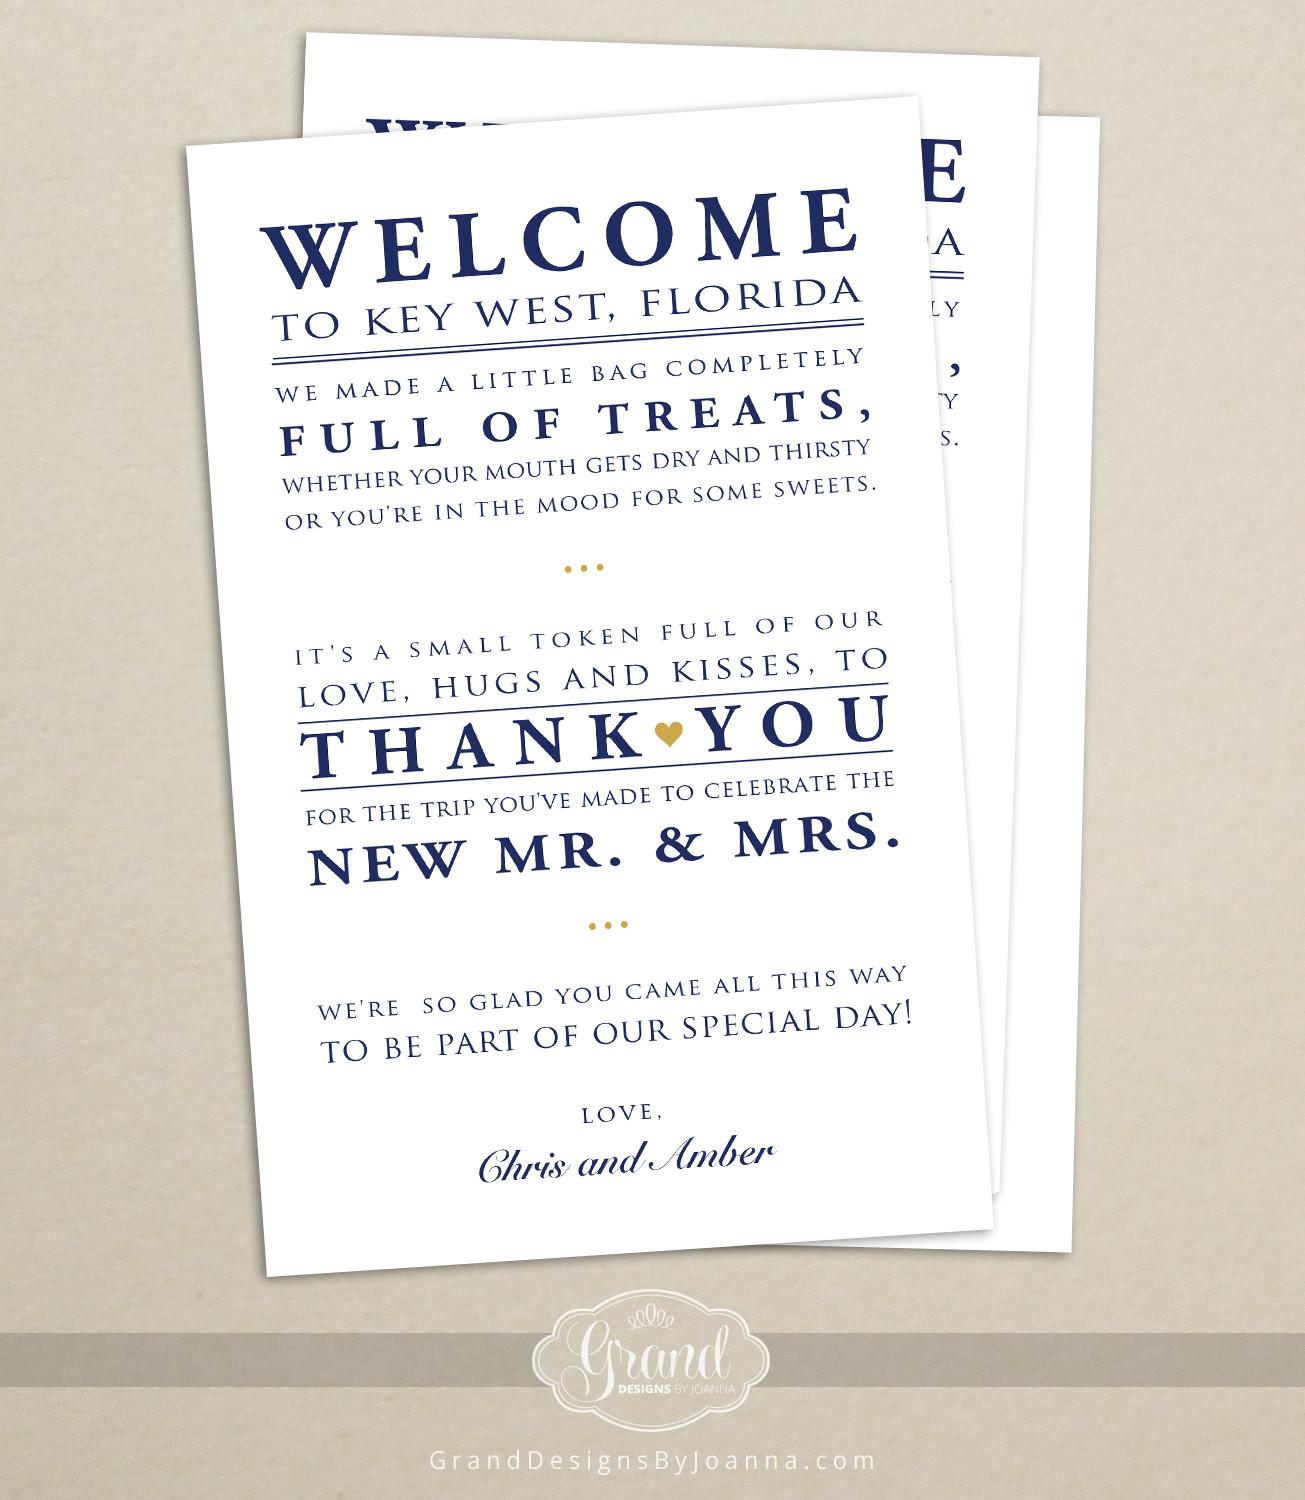 Wedding Hotel Welcome Bag Letter Note